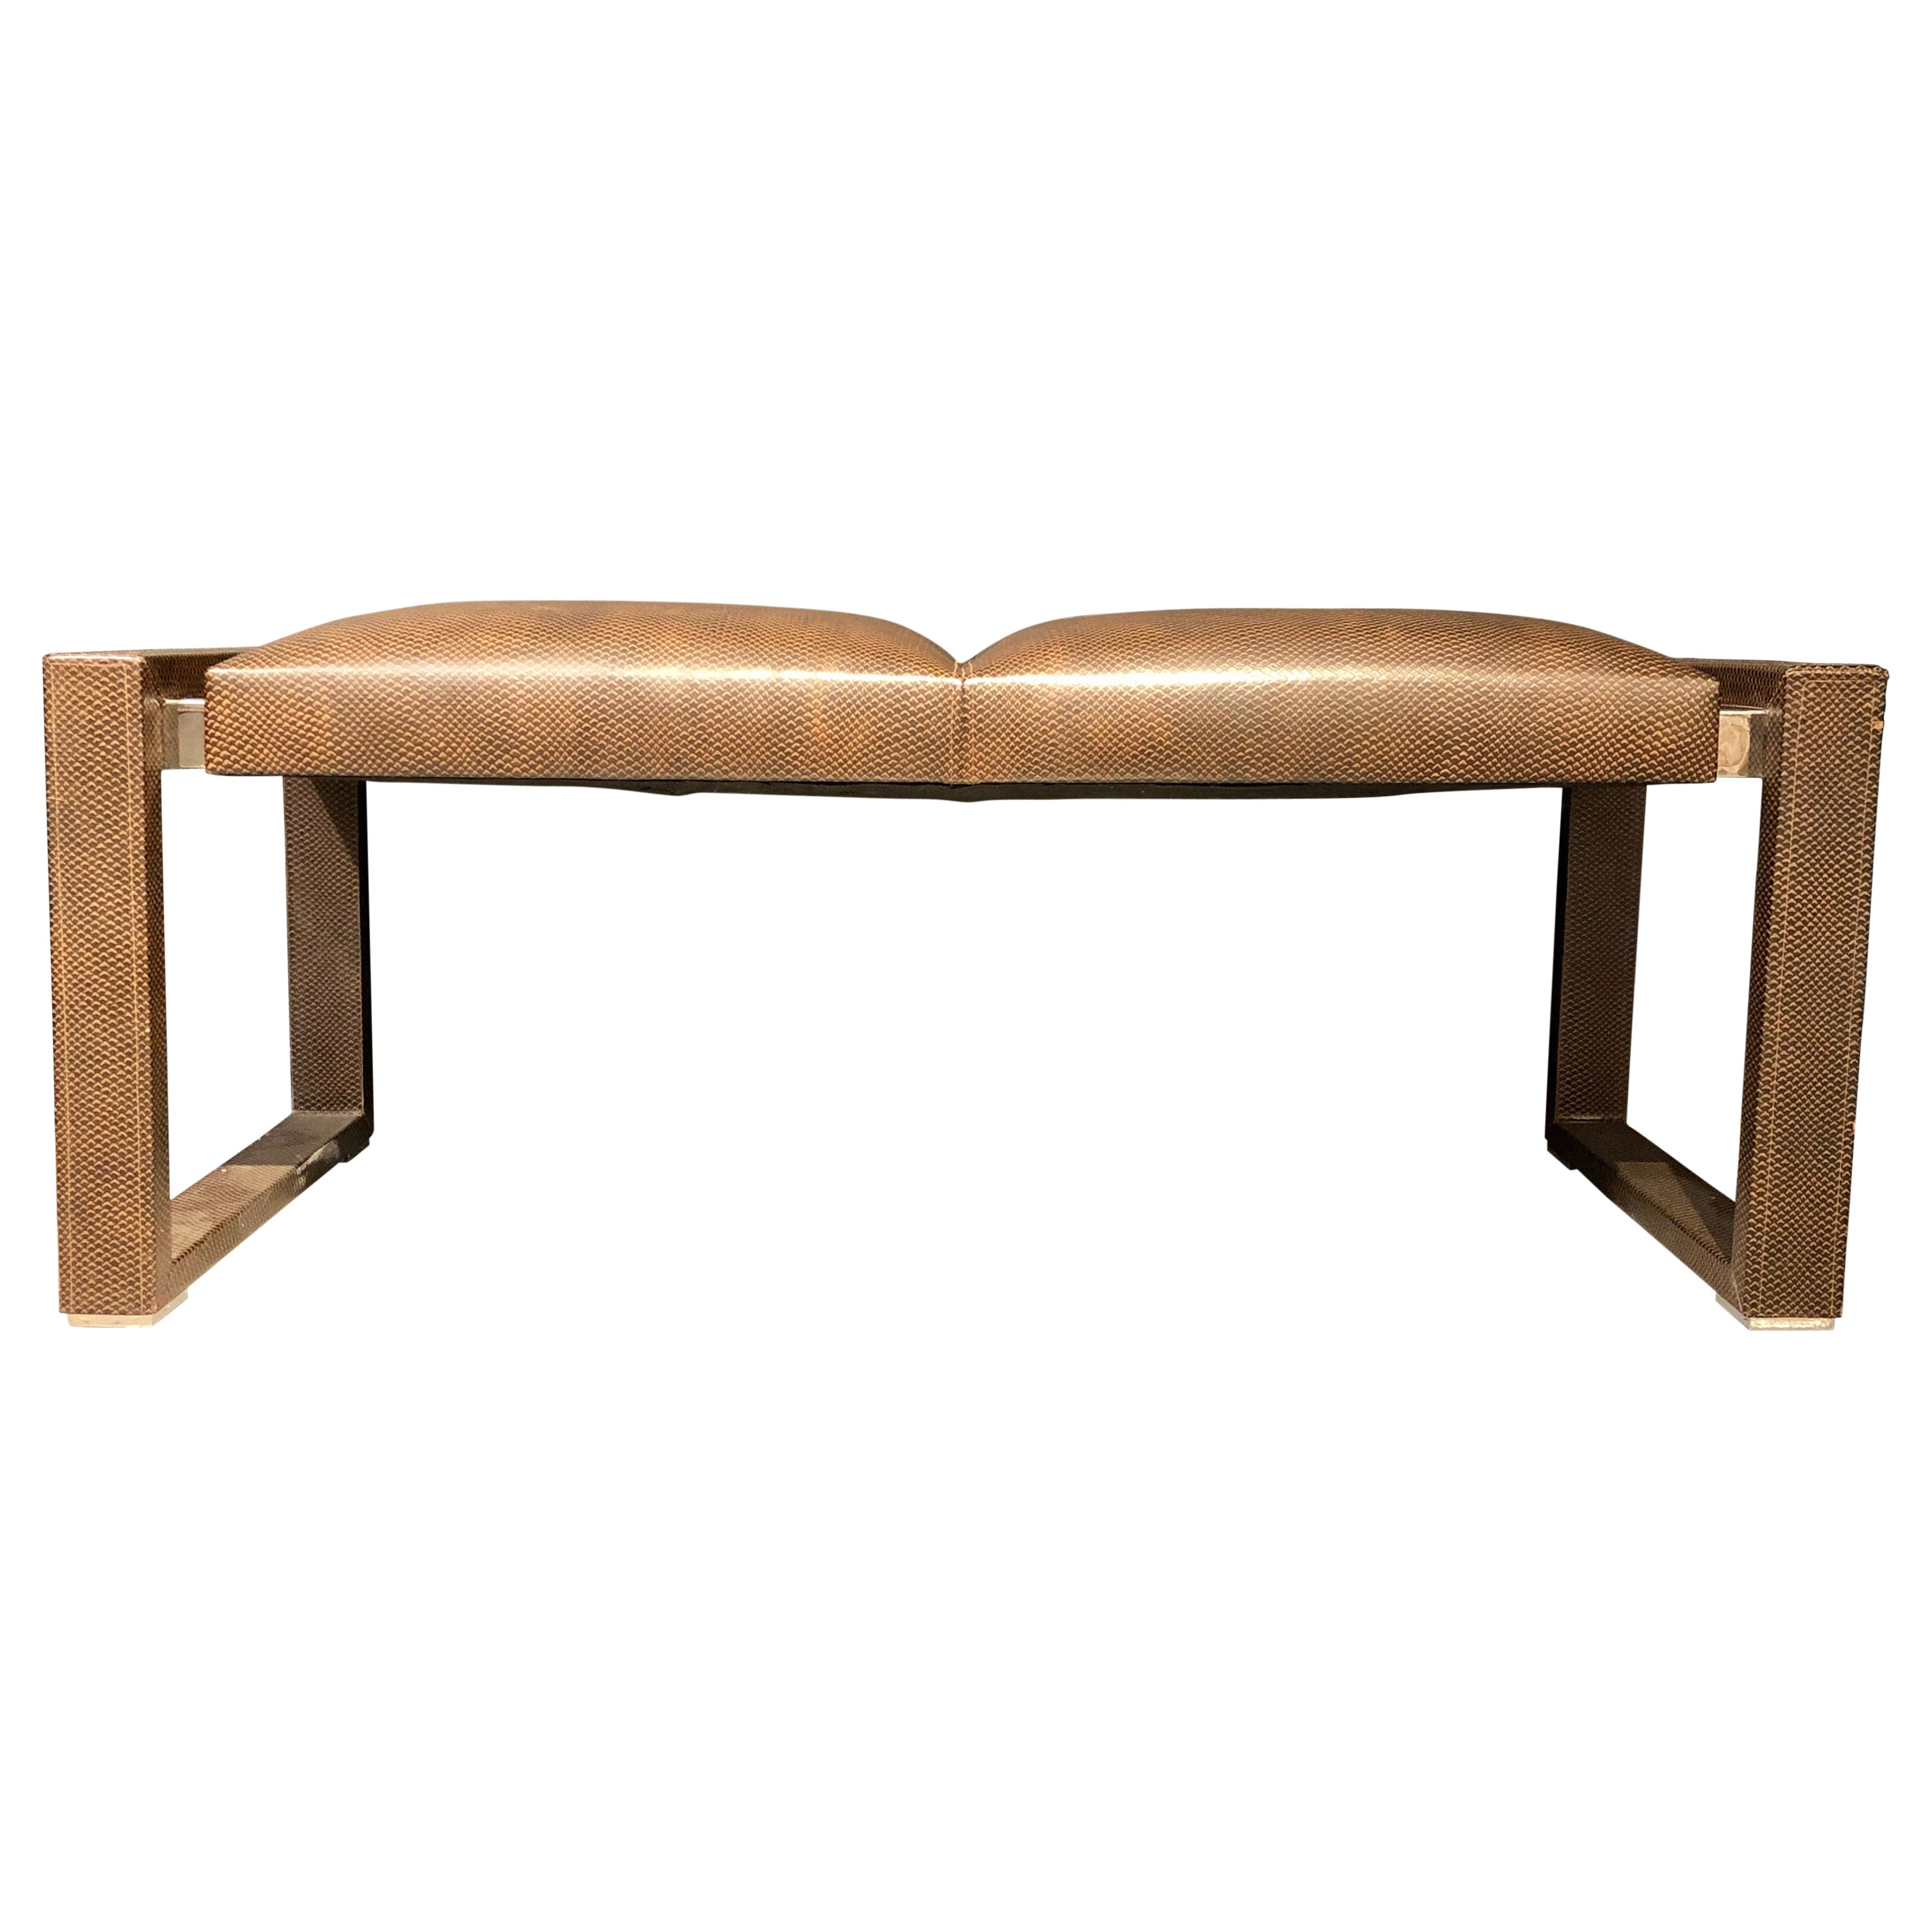 Loren Marsh Design Bench Embossed Leather and Polished Stainless Steel